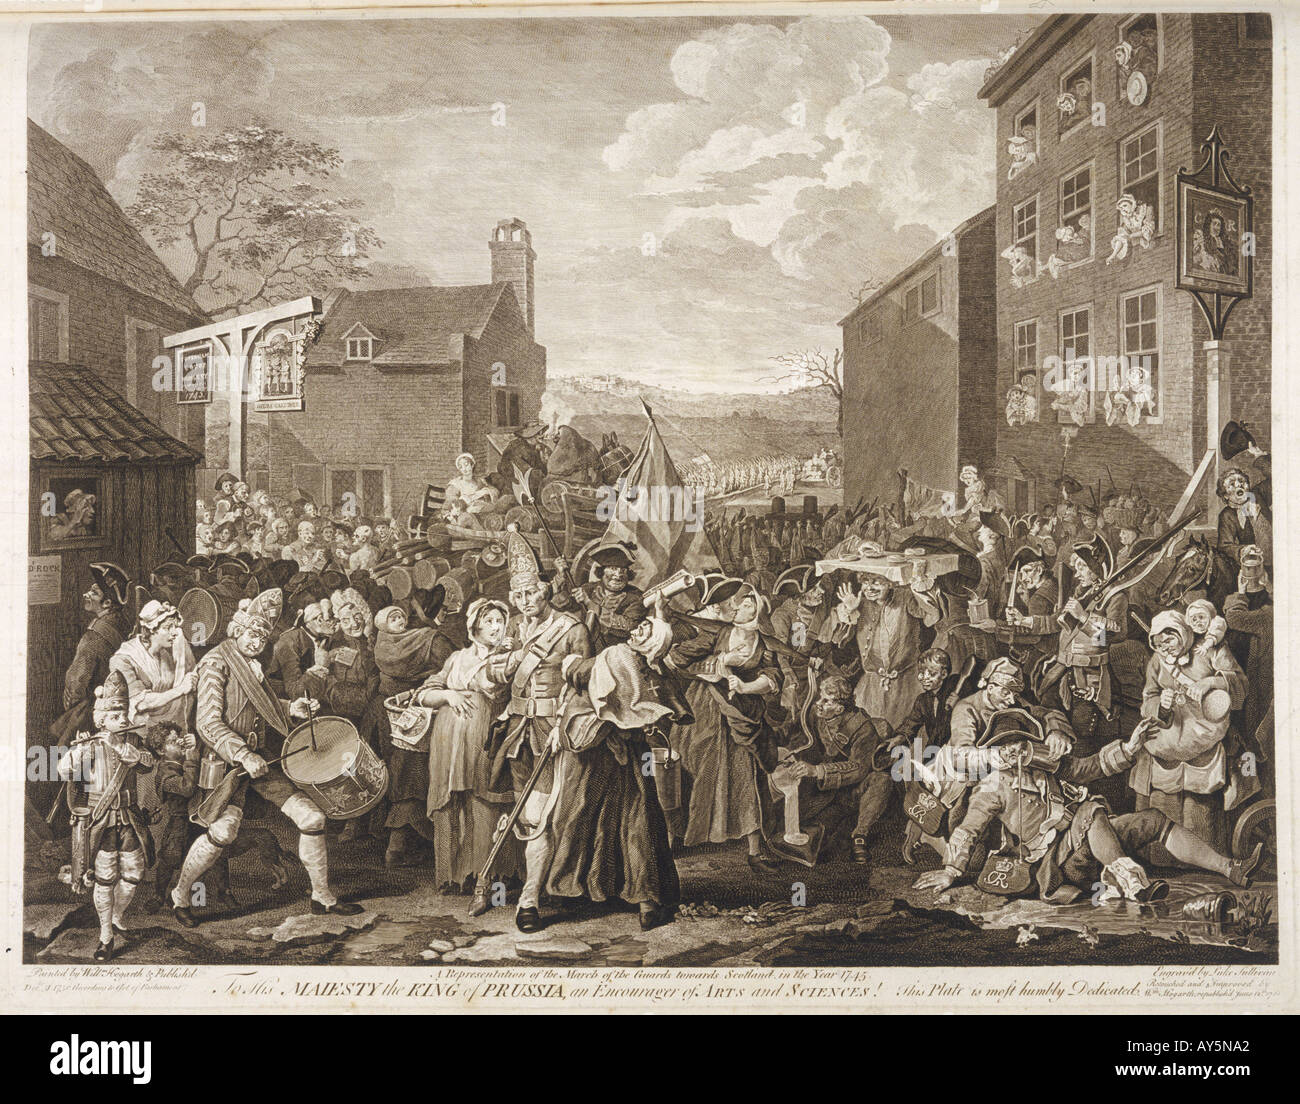 Events Britain 1745 Rebe - Stock Image